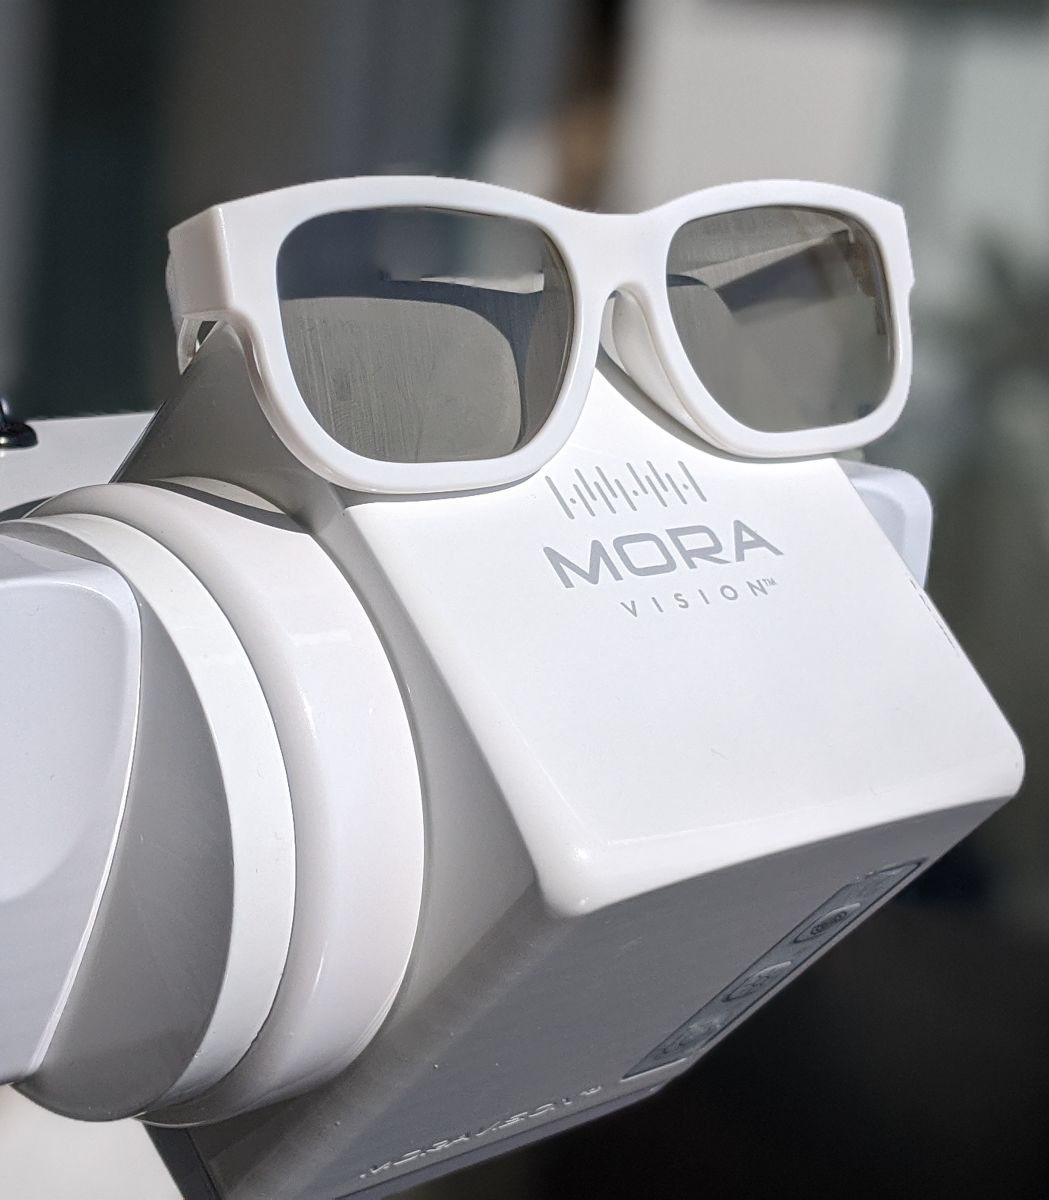 Laser Tool with sunglasses